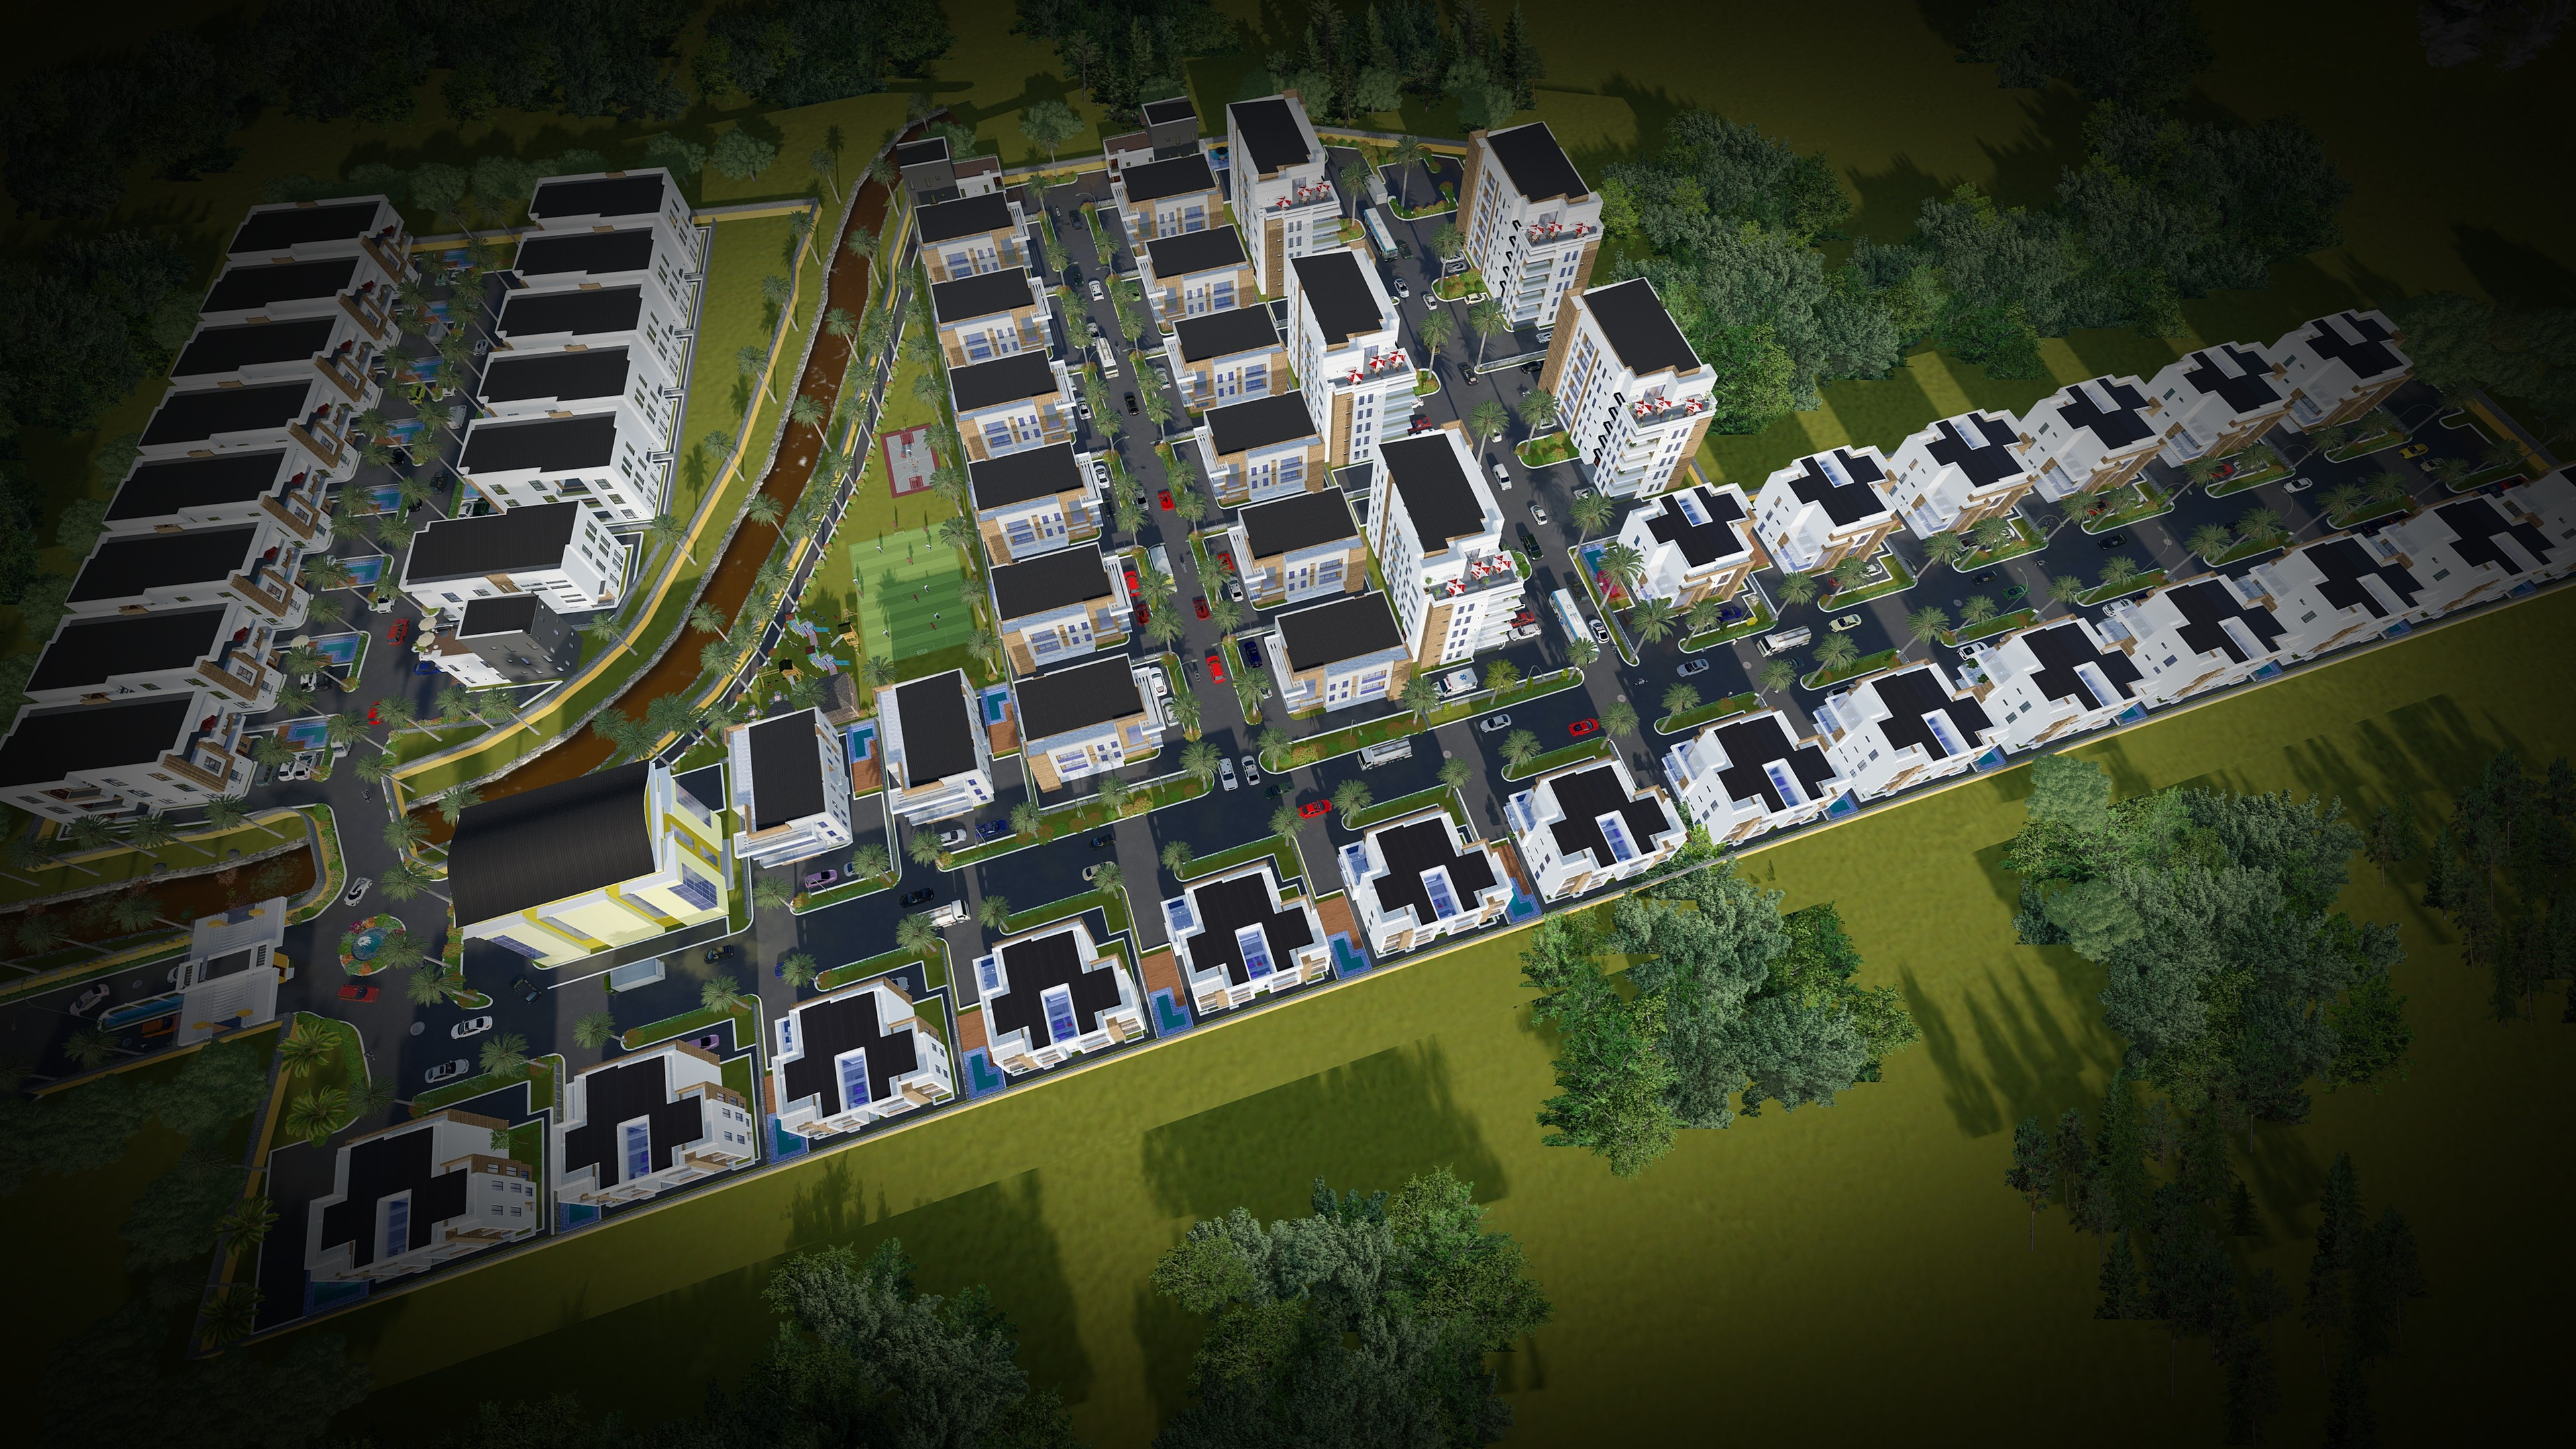 The Maverick Gbagada, 67 Serviced Plots of Land Now Selling! Investors, Agents, Cooperatives, Here is a Life Time Opportunity for You lindaikejisblog4